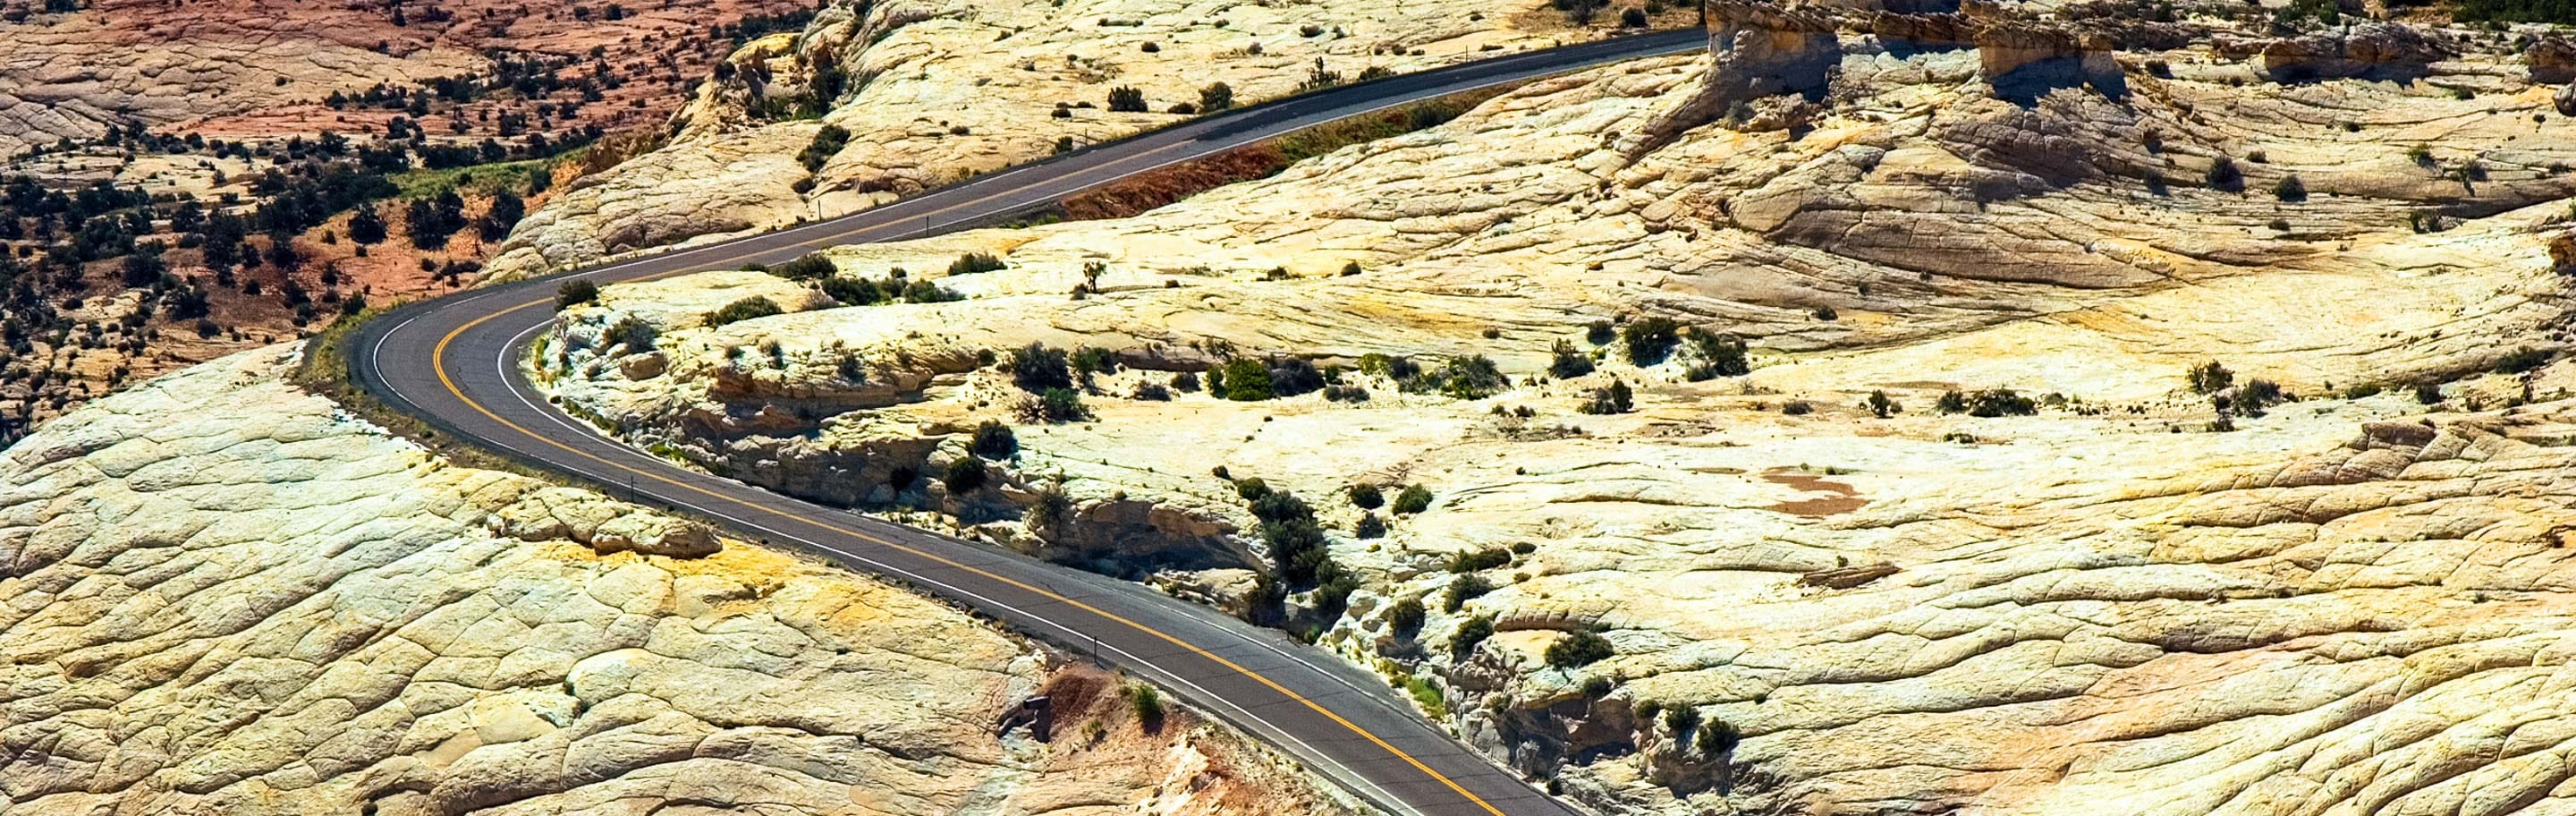 Aerial view of southern Utah desert biking road